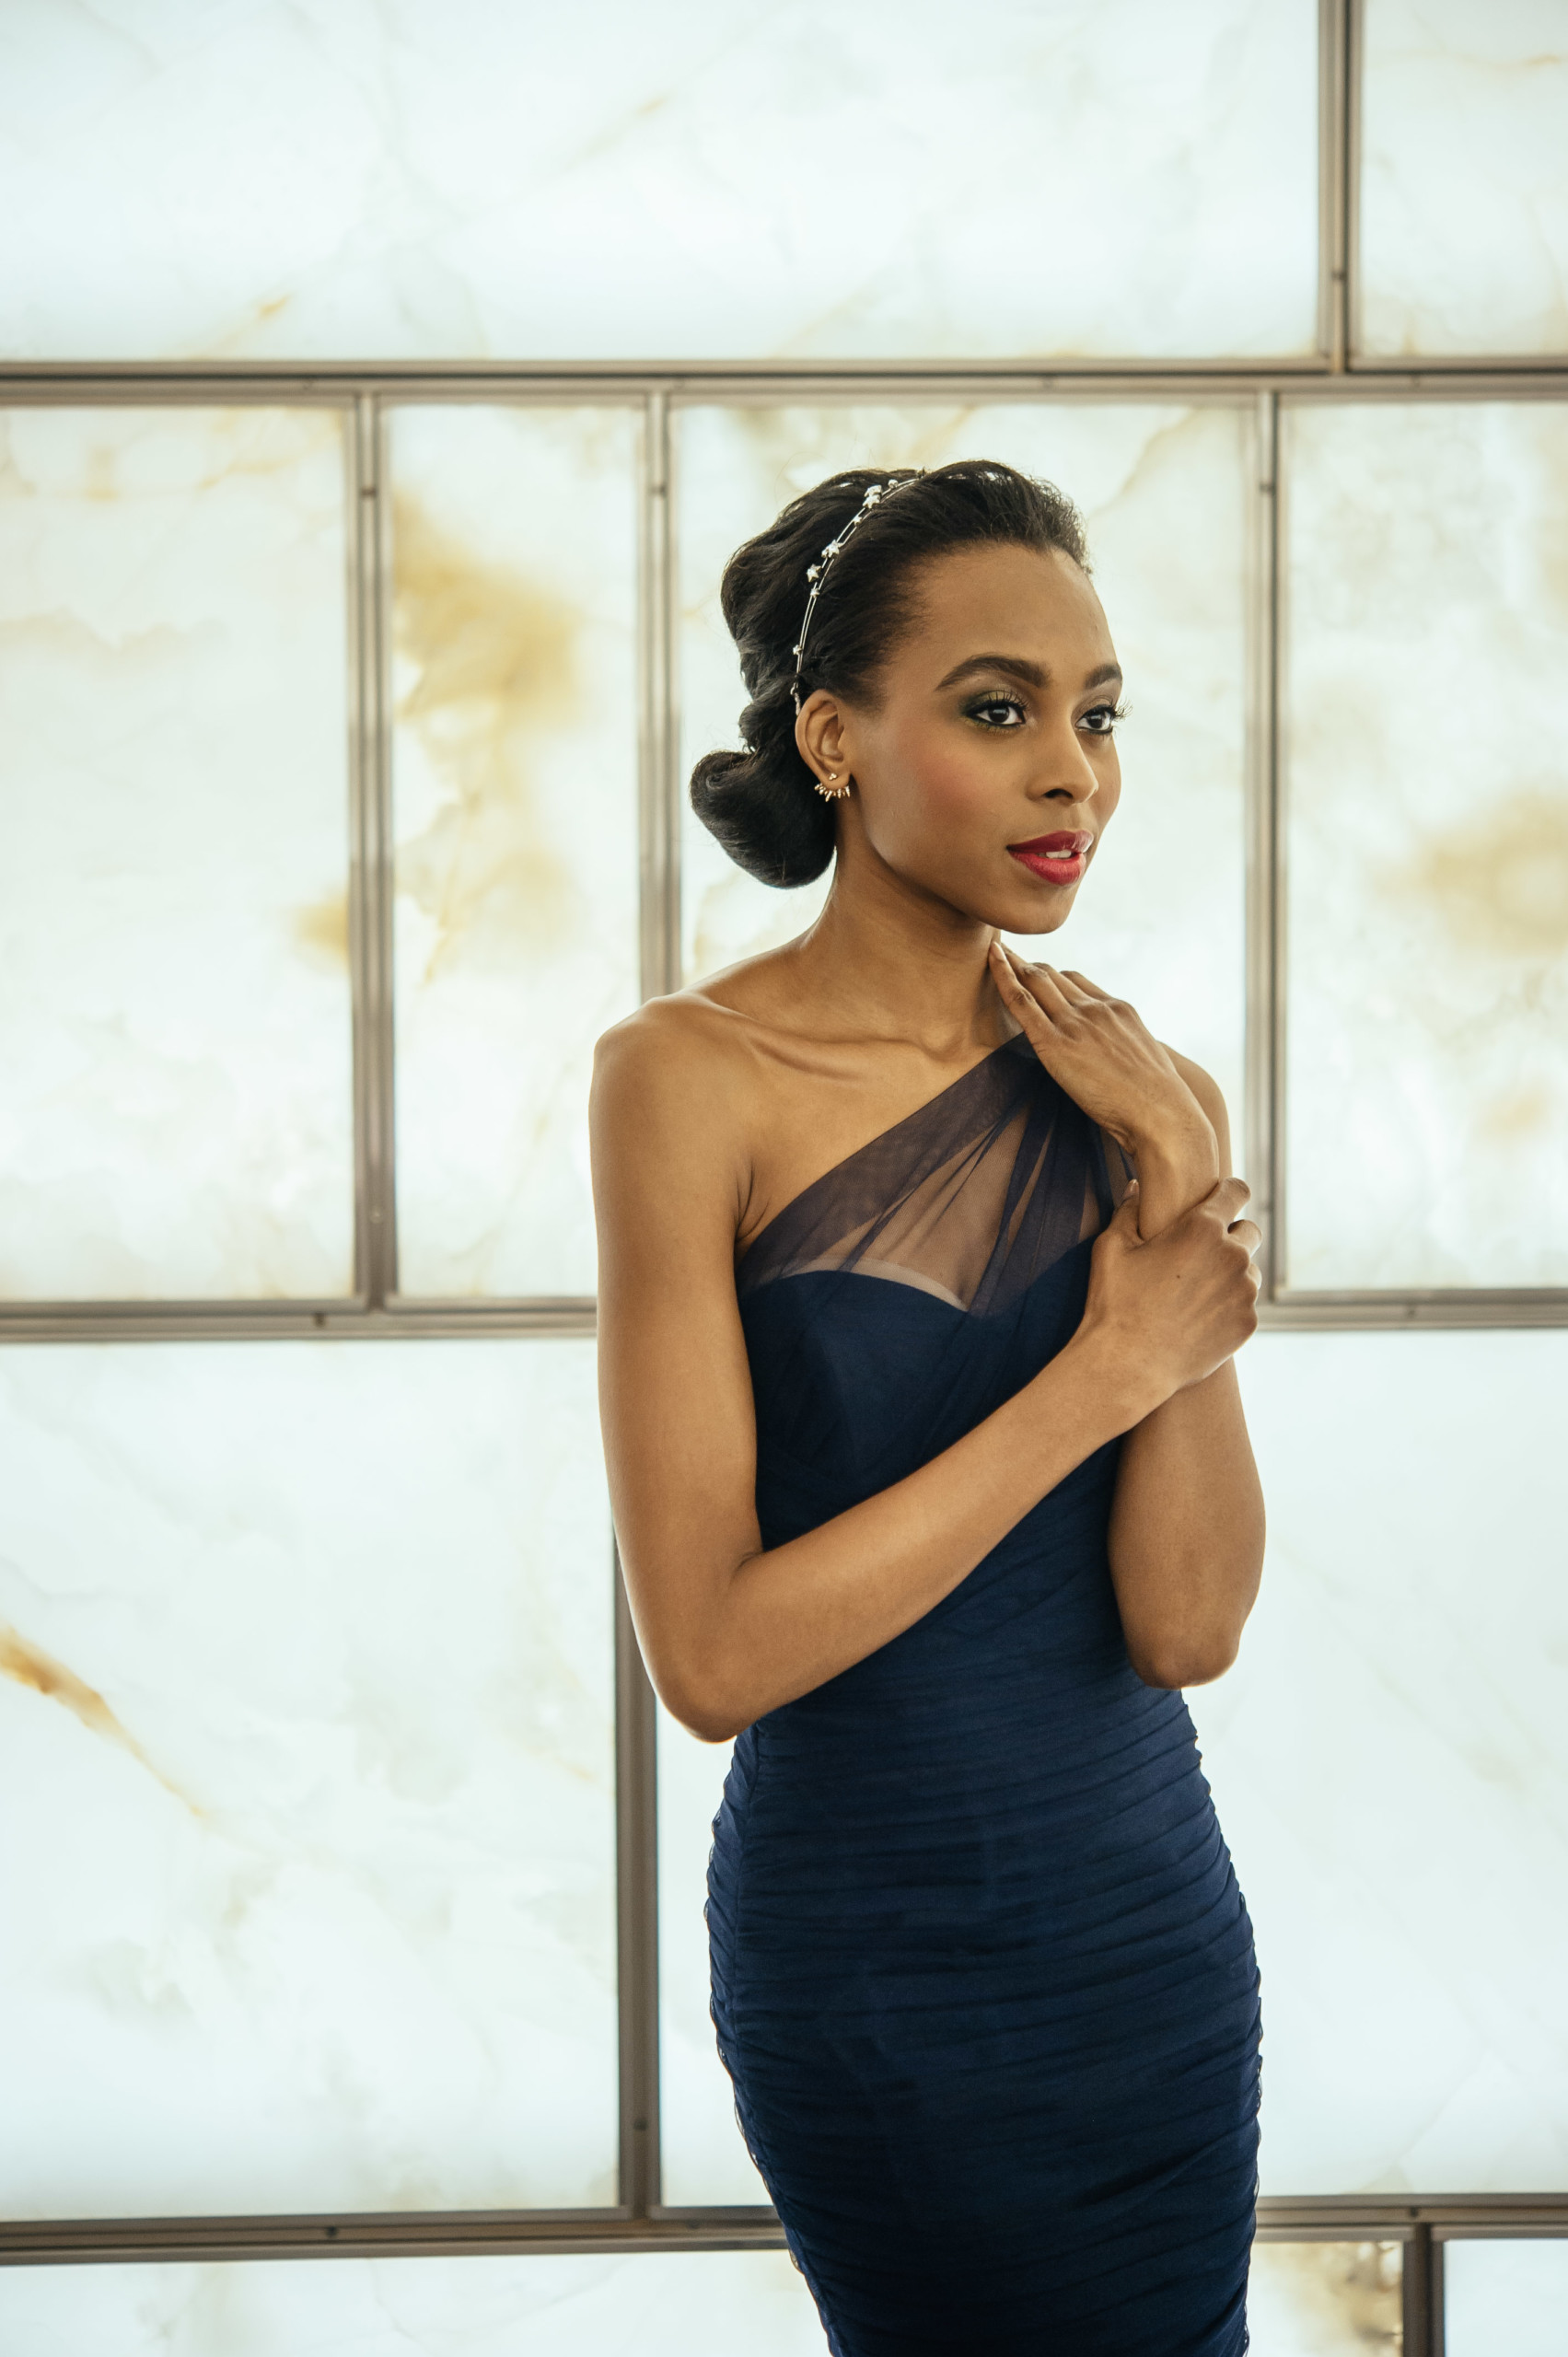 Chic bridesmaid in one-shoulder navy gown with updo and sparkly headband, and dramatic makeup